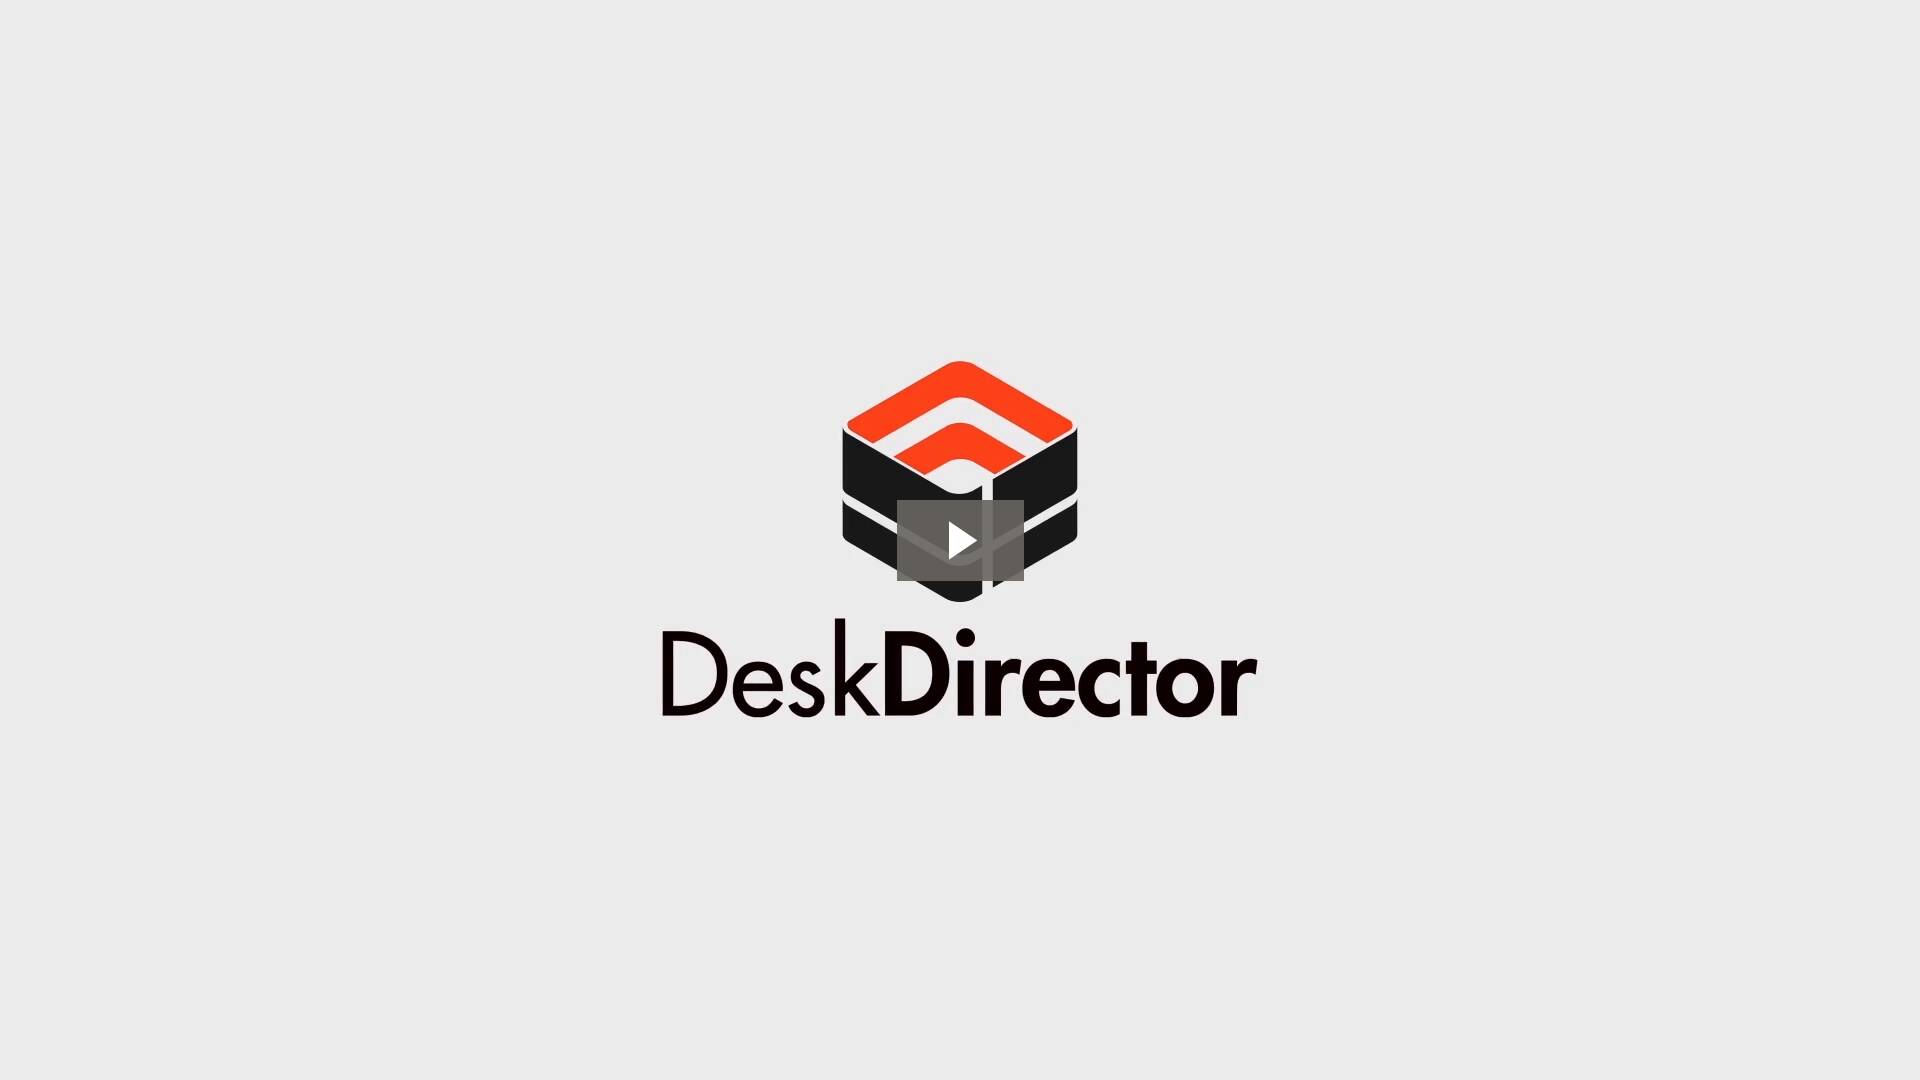 How to make DeskDirector Project Successful? Part 1